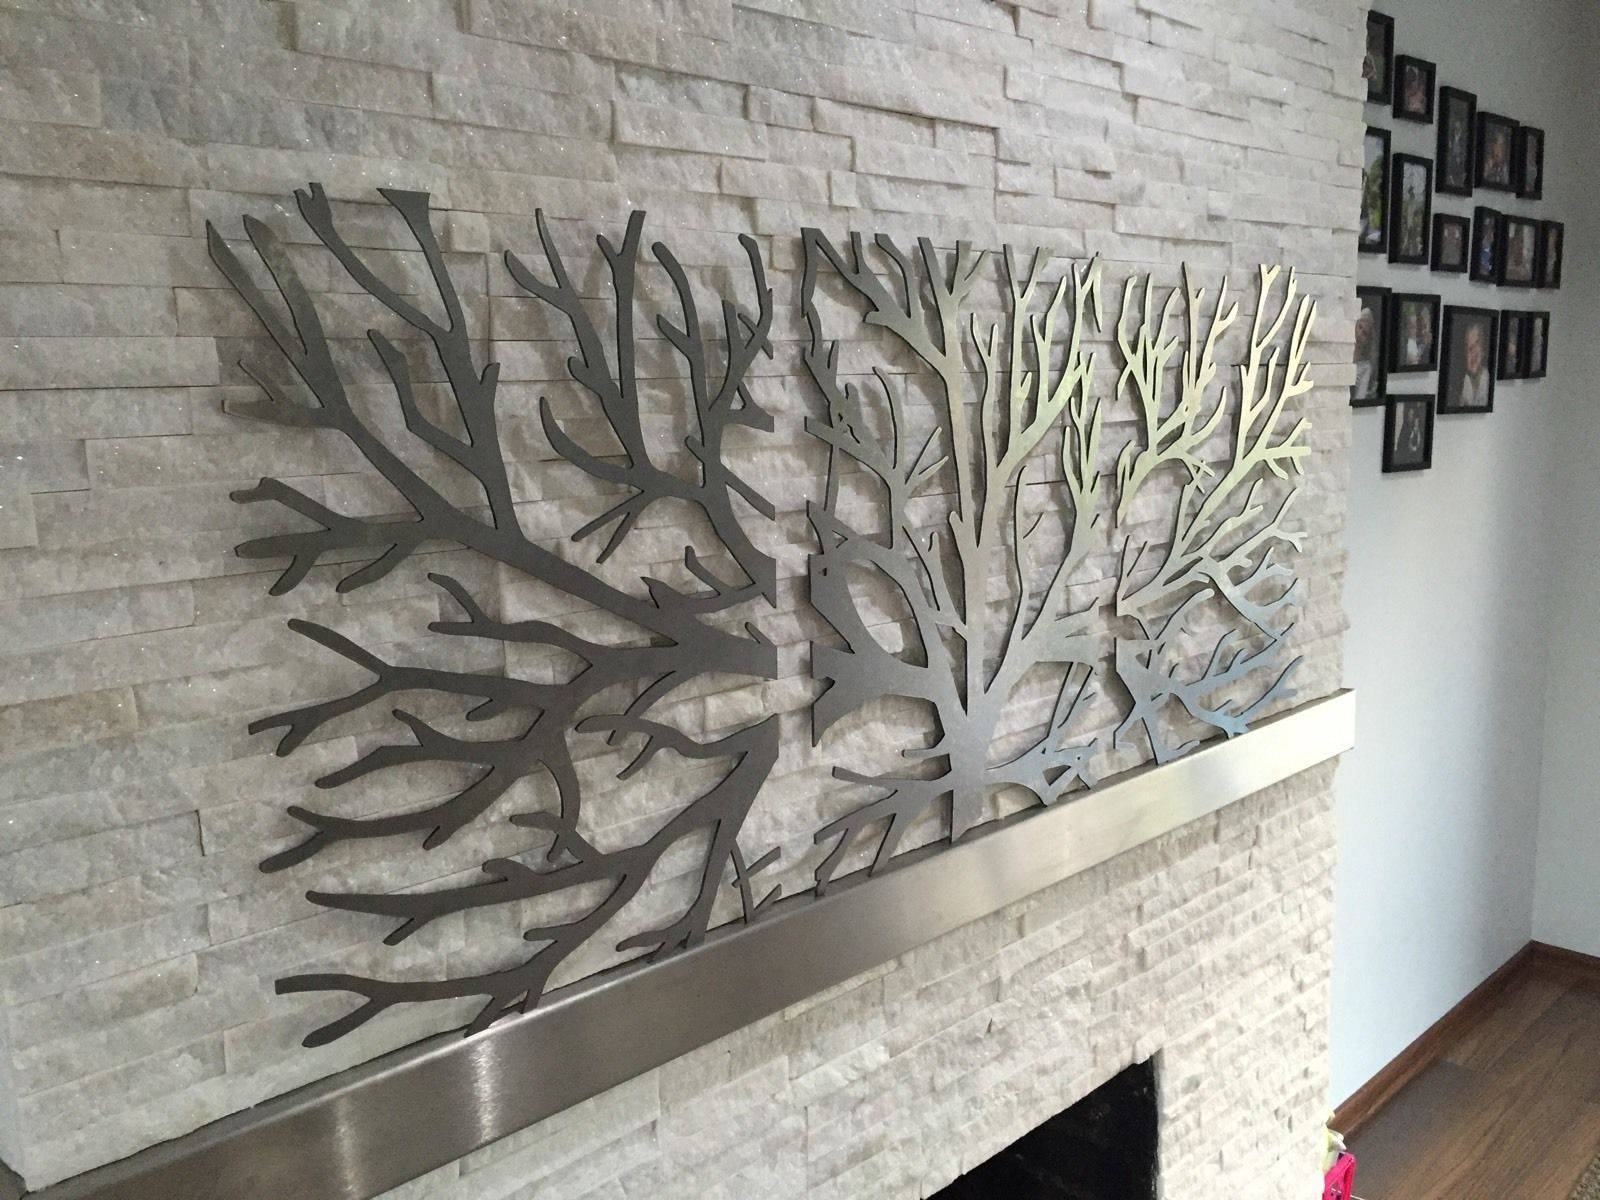 Wall Art 3D Metal Decor | Wallartideas With Latest 3D Metal Wall Art Sculptures (View 14 of 20)